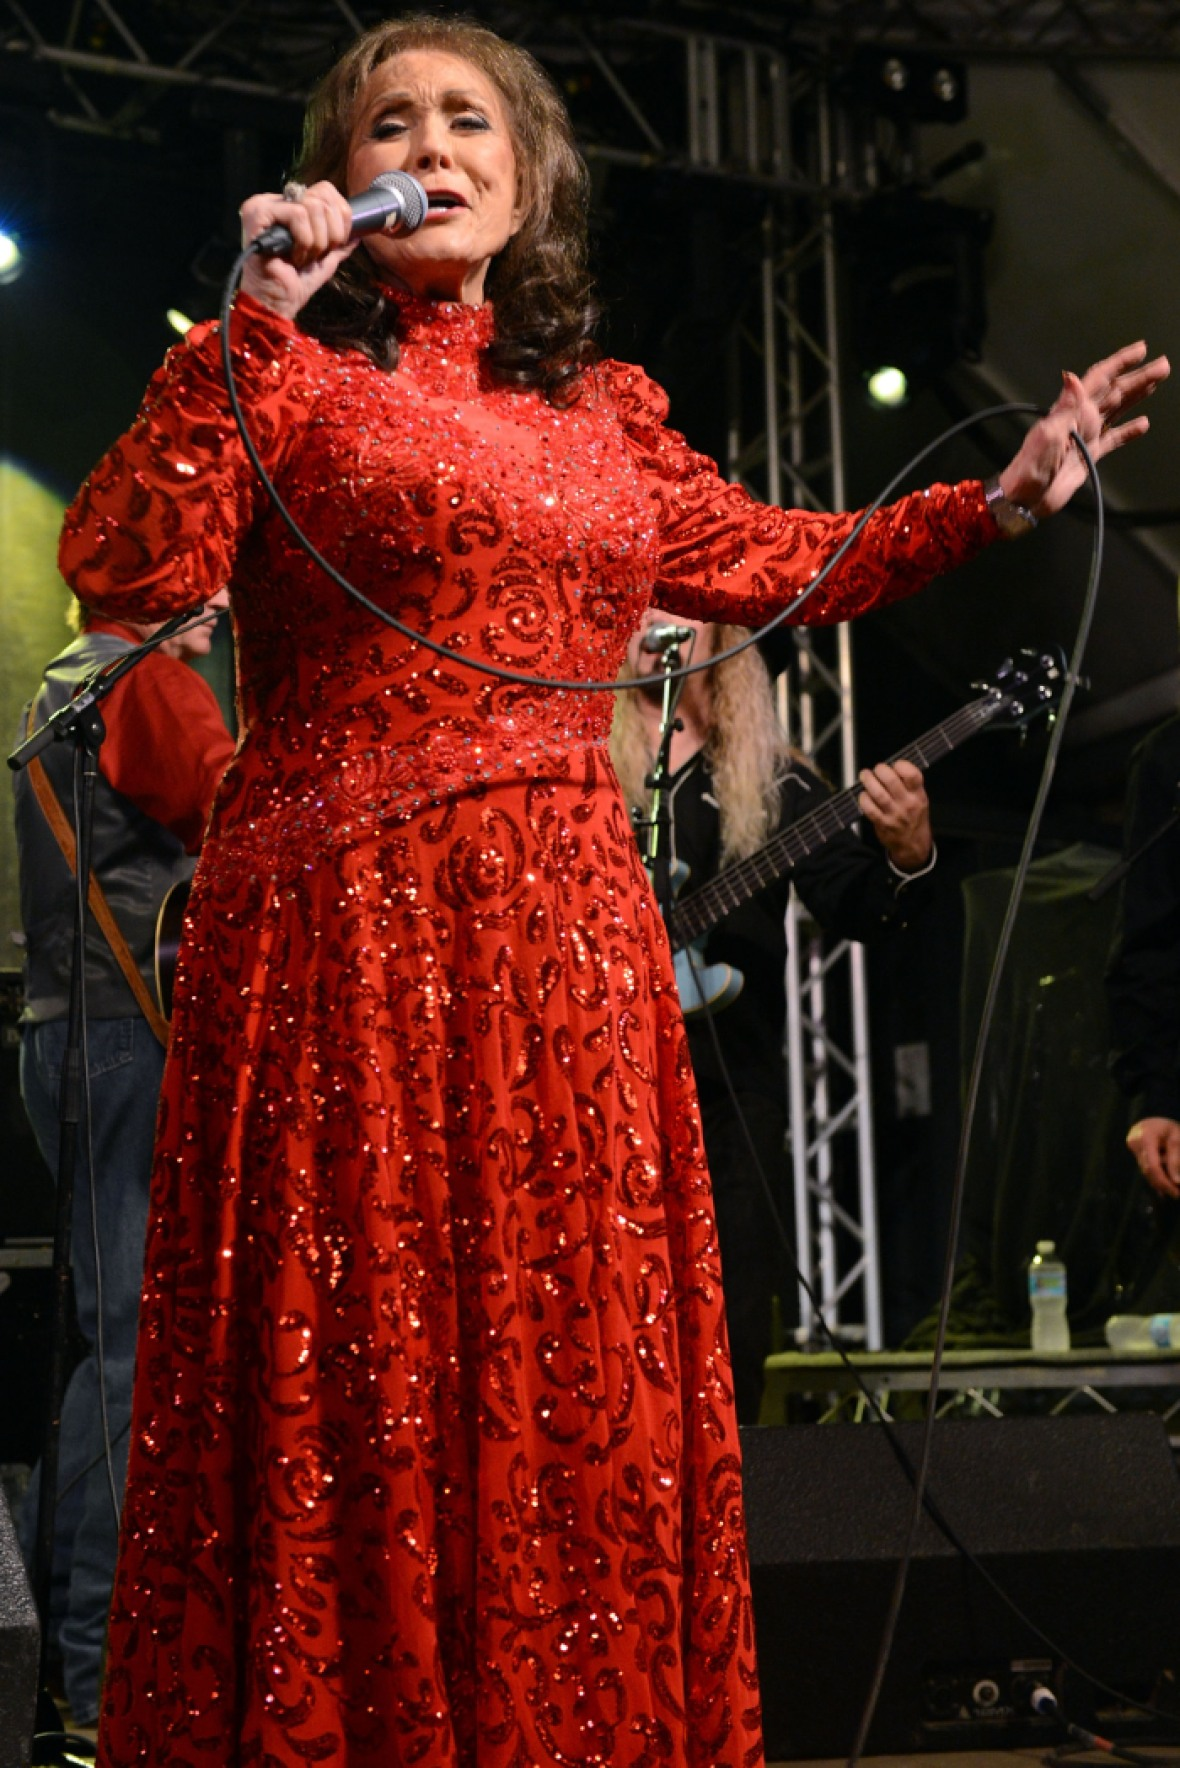 loretta lynn singing getty images